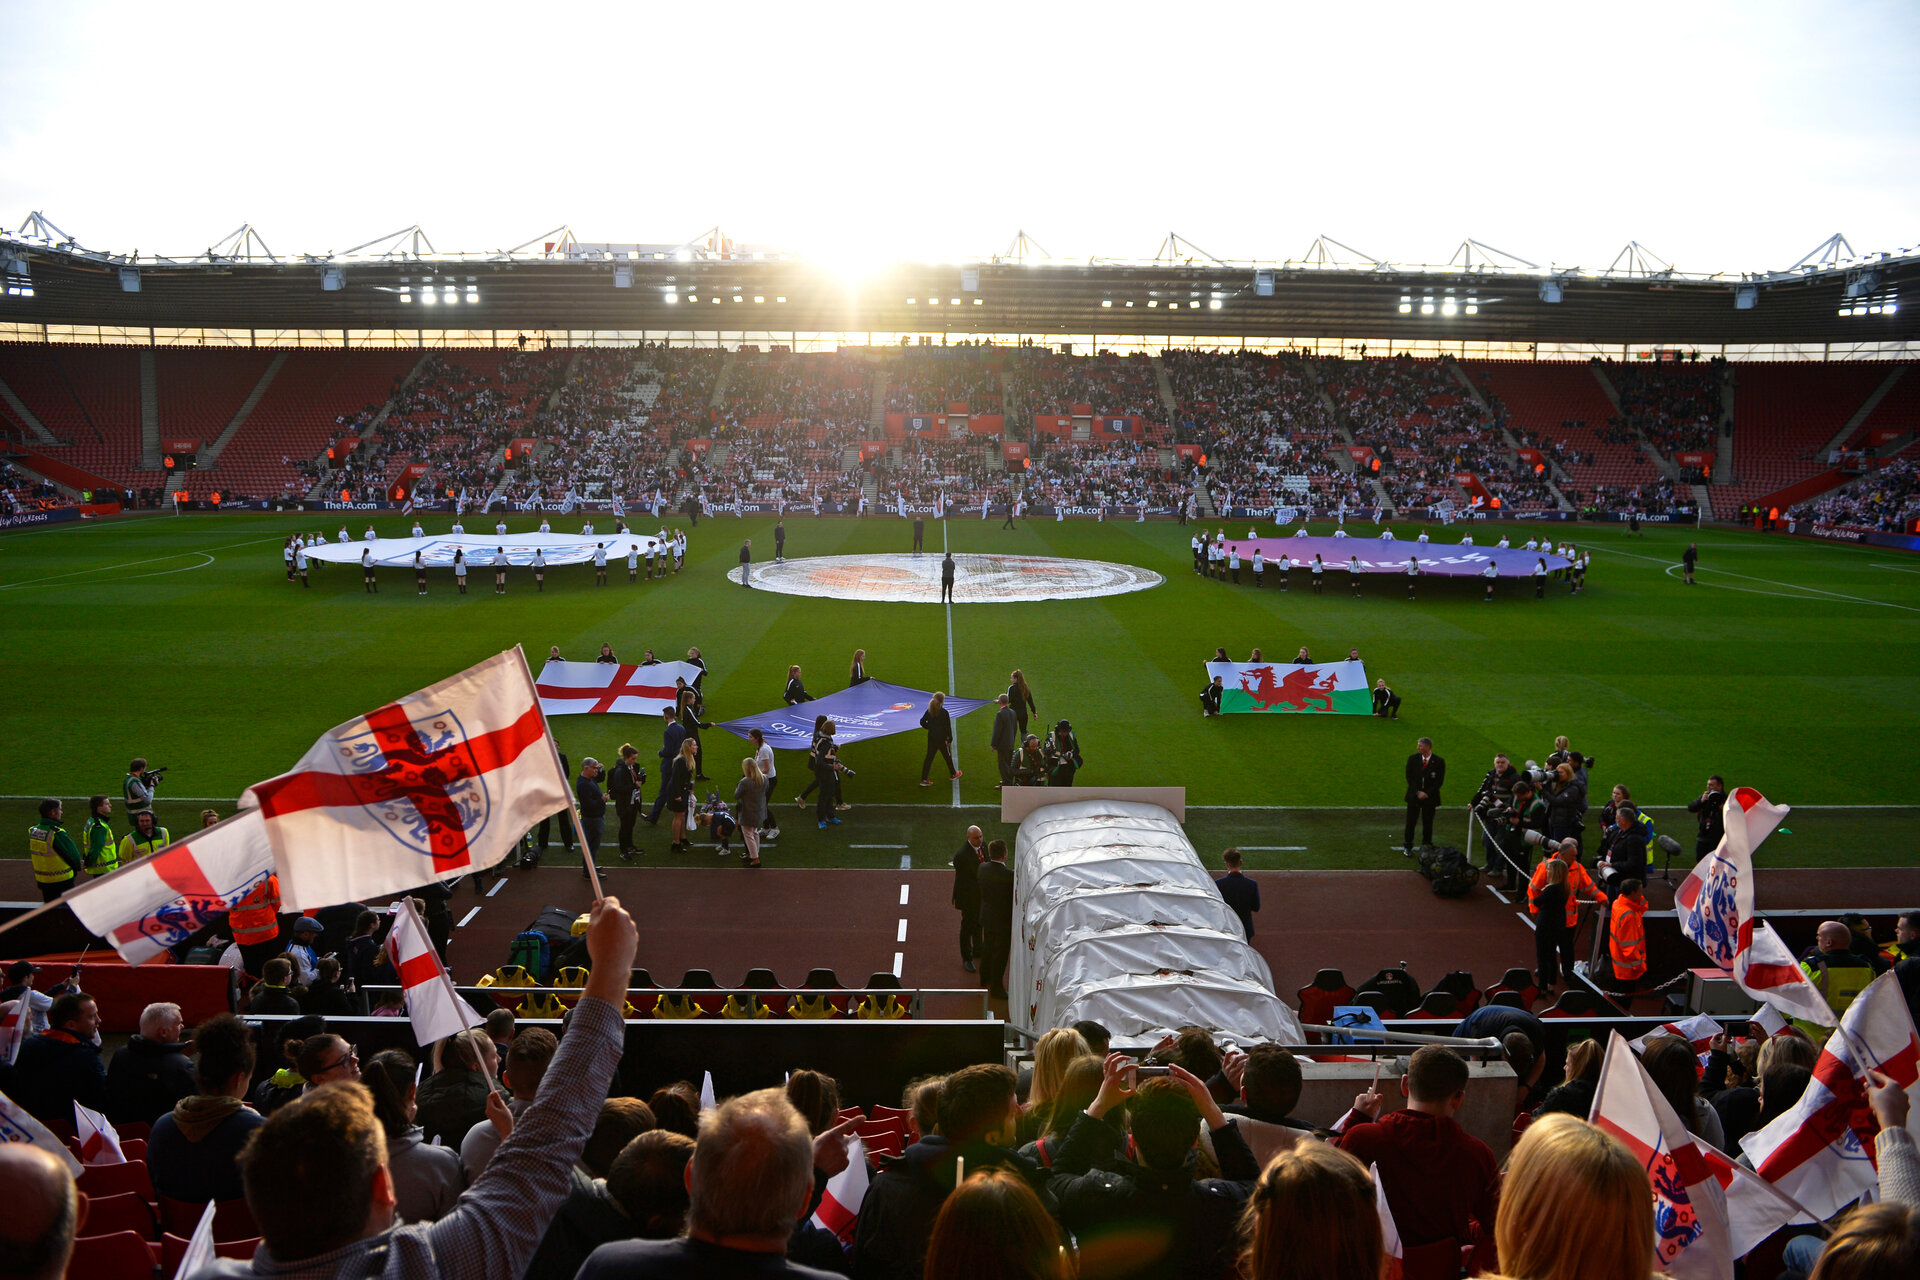 SOUTHAMPTON, ENGLAND - APRIL 06: General view ahead of the Women's World Cup Qualifier match between England and Wales match at St Mary's Stadium on April 6, 2018 in Southampton, England. (Photo by James Bridle - Southampton FC/Southampton FC via Getty Images)